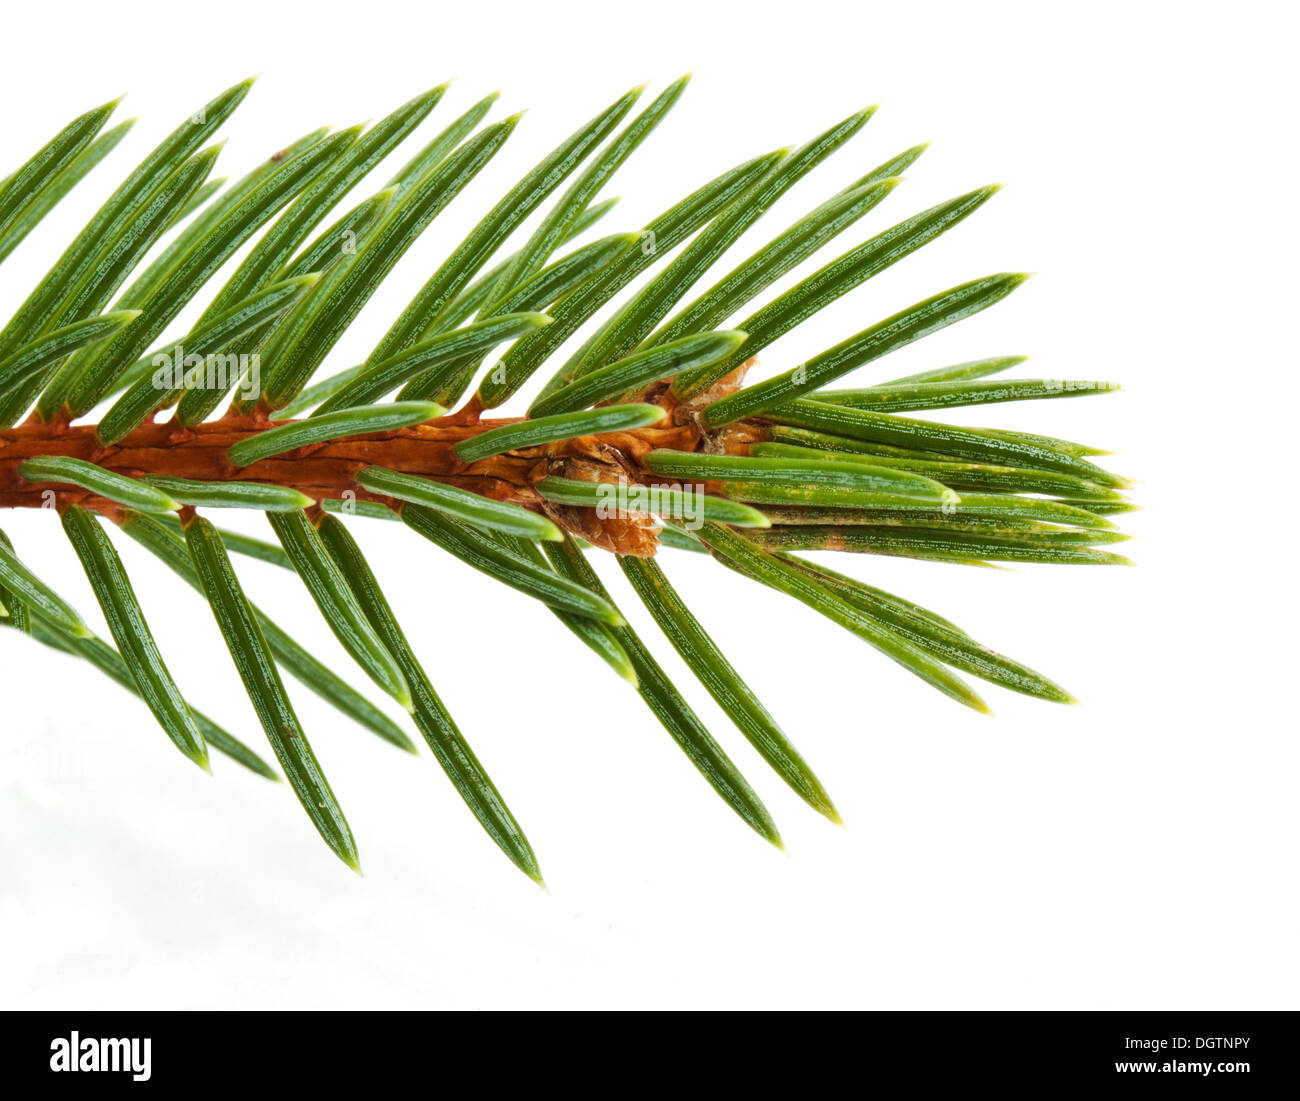 Pine tree branch isolated on white backgrond - Stock Image